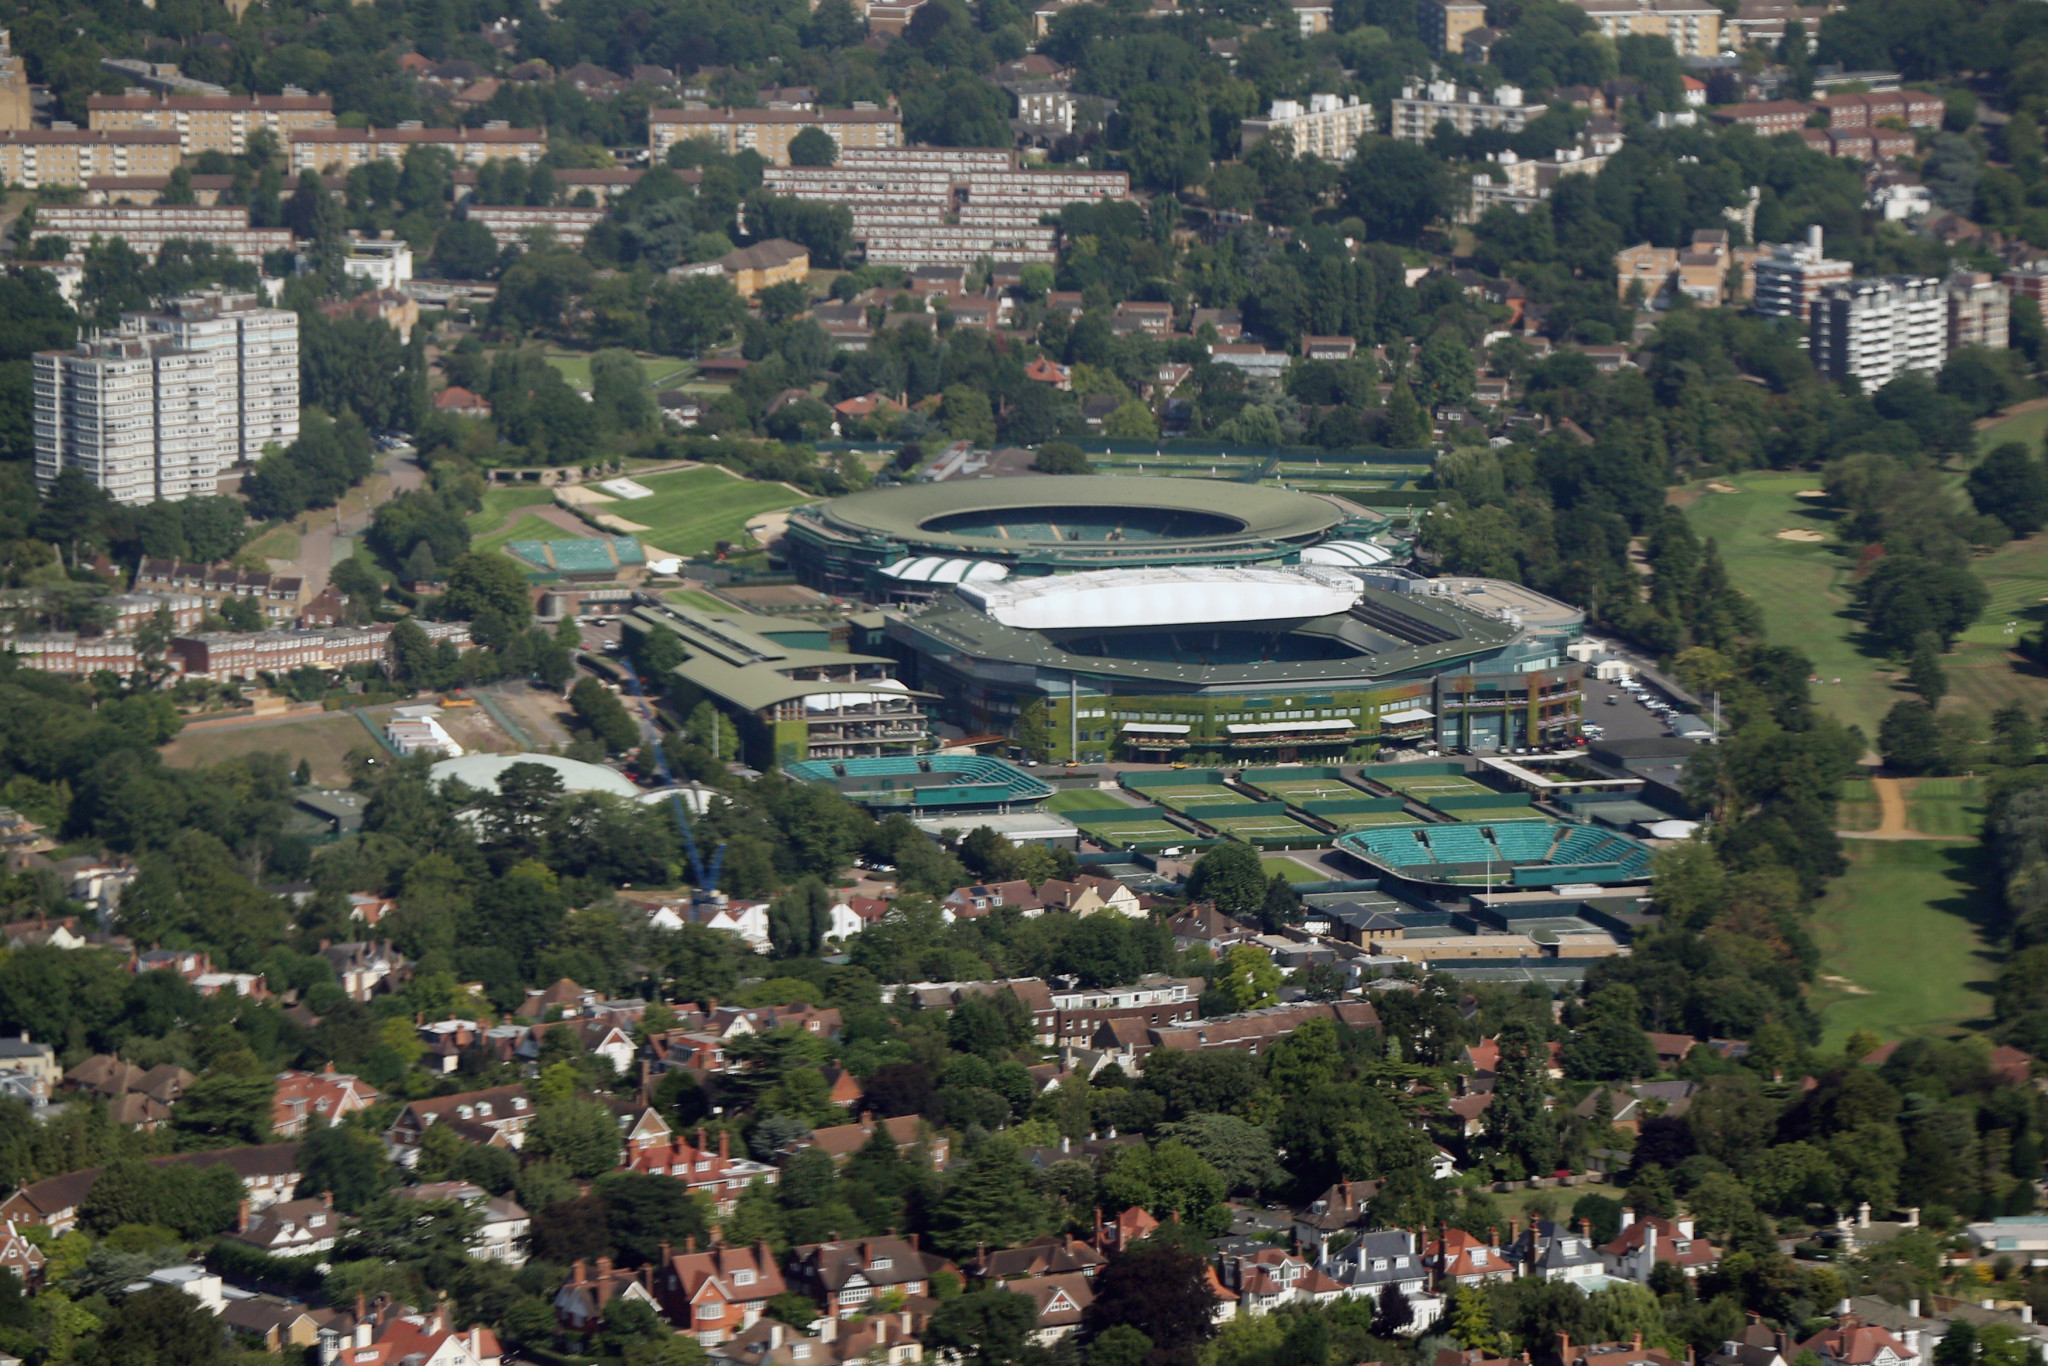 The Wimbledon museum, shop and community sports ground have been closed due to the coronavirus outbreak ©Getty Images